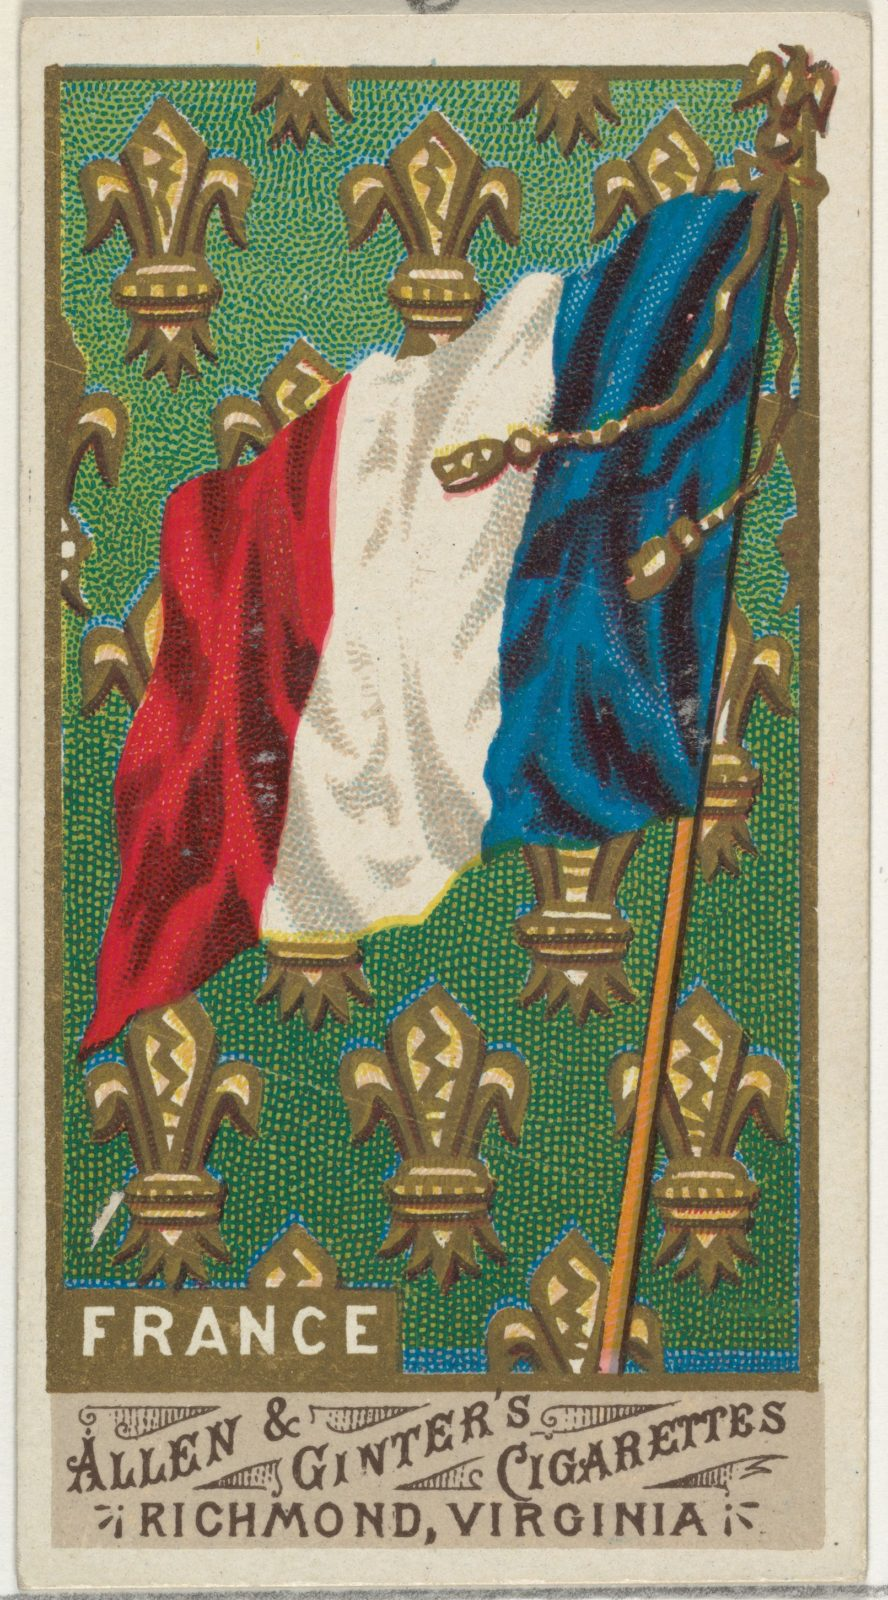 France, from Flags of All Nations, Series 1 (N9) for Allen & Ginter Cigarettes Brands